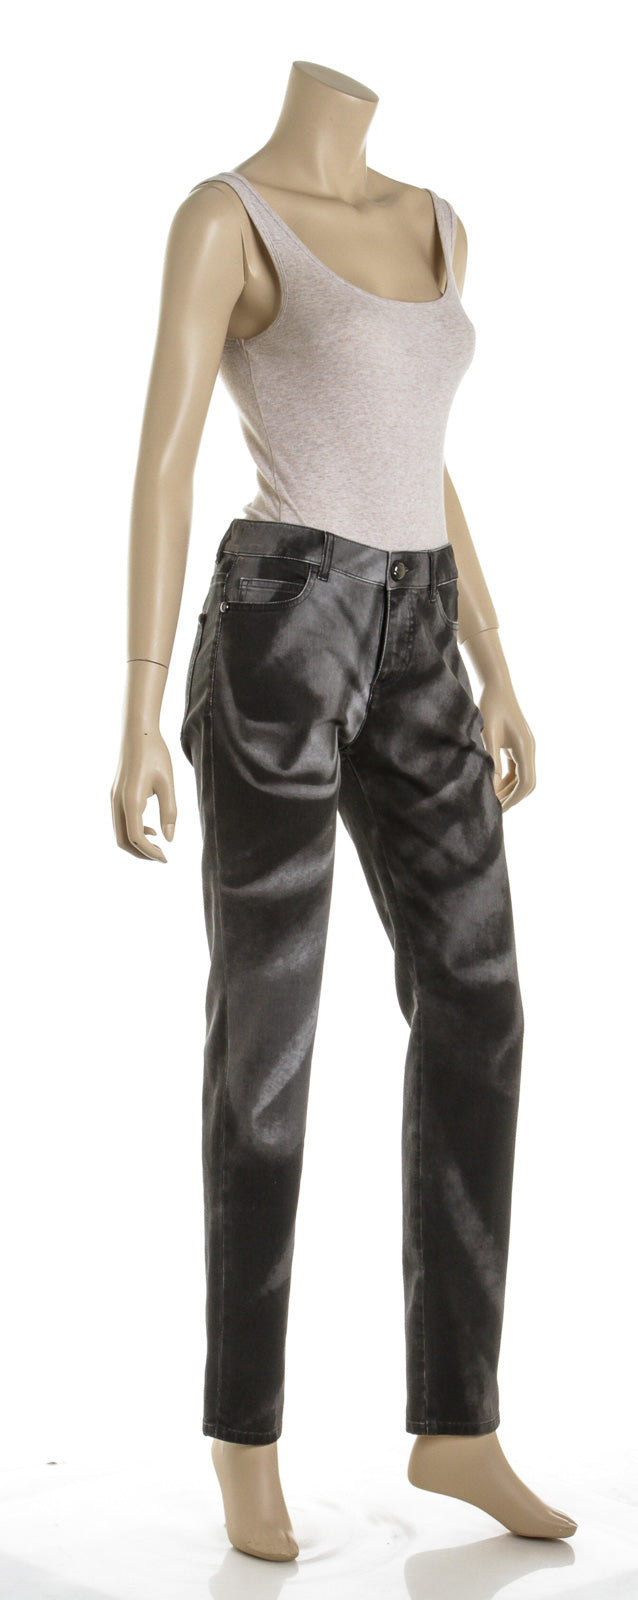 Chanel Black Cotton Twill White Washed Jeans (Size 38)